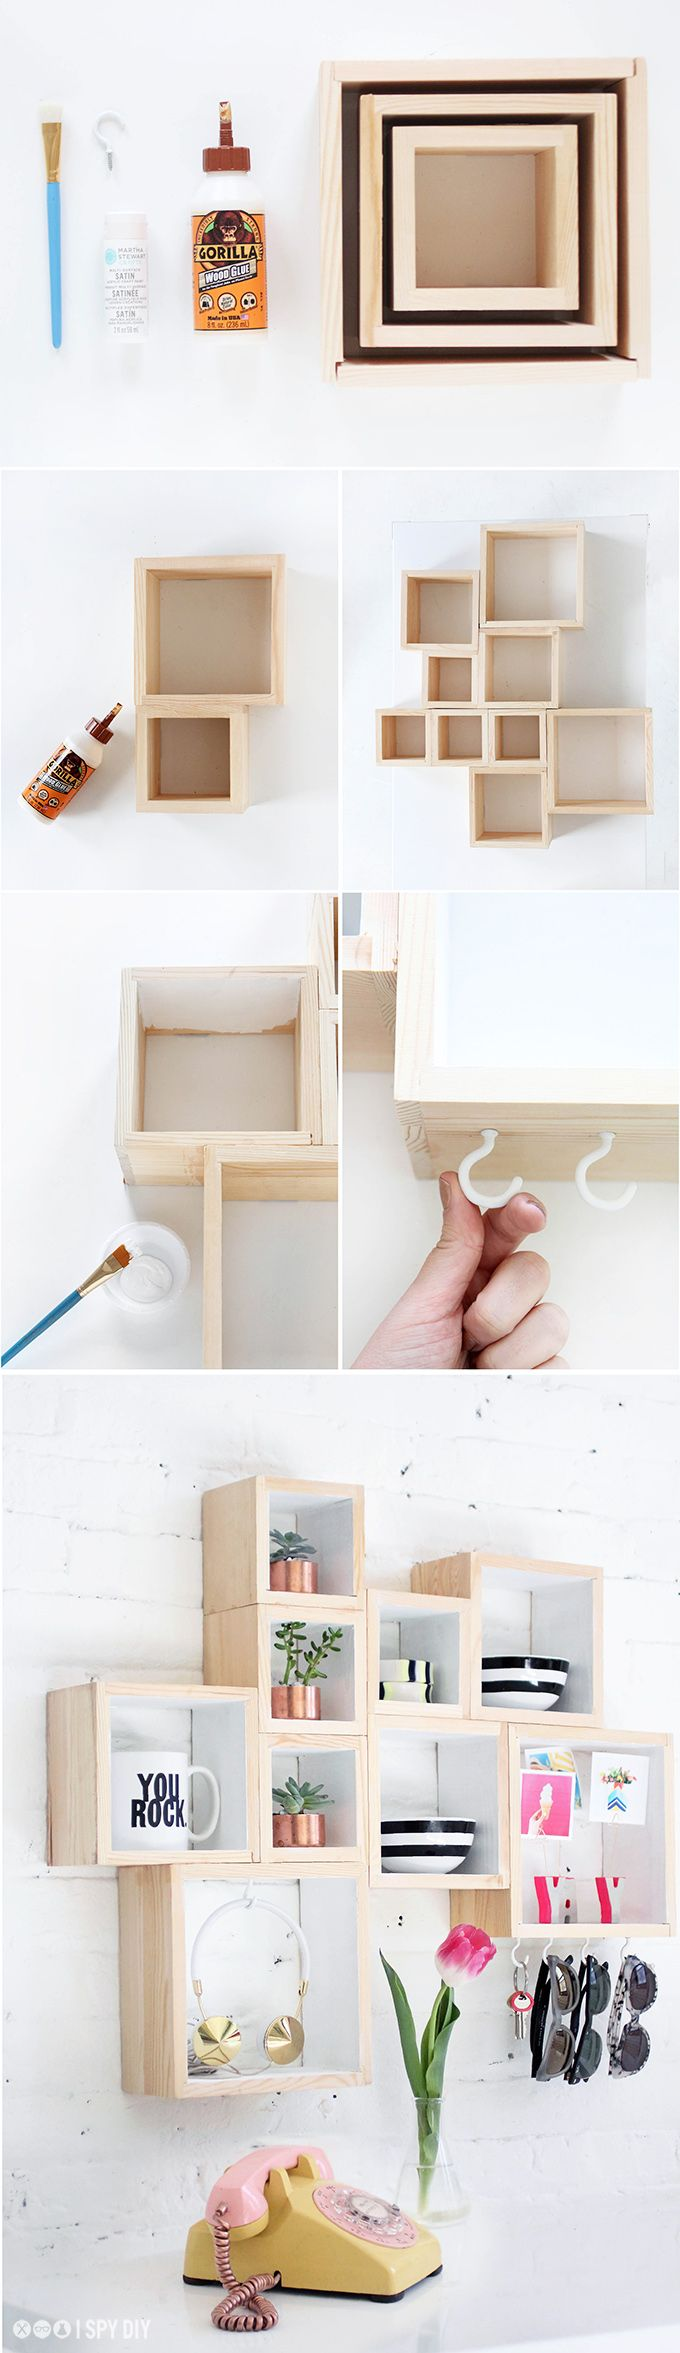 Des étagères | Out-the-door Box Storage | I SPY DIY